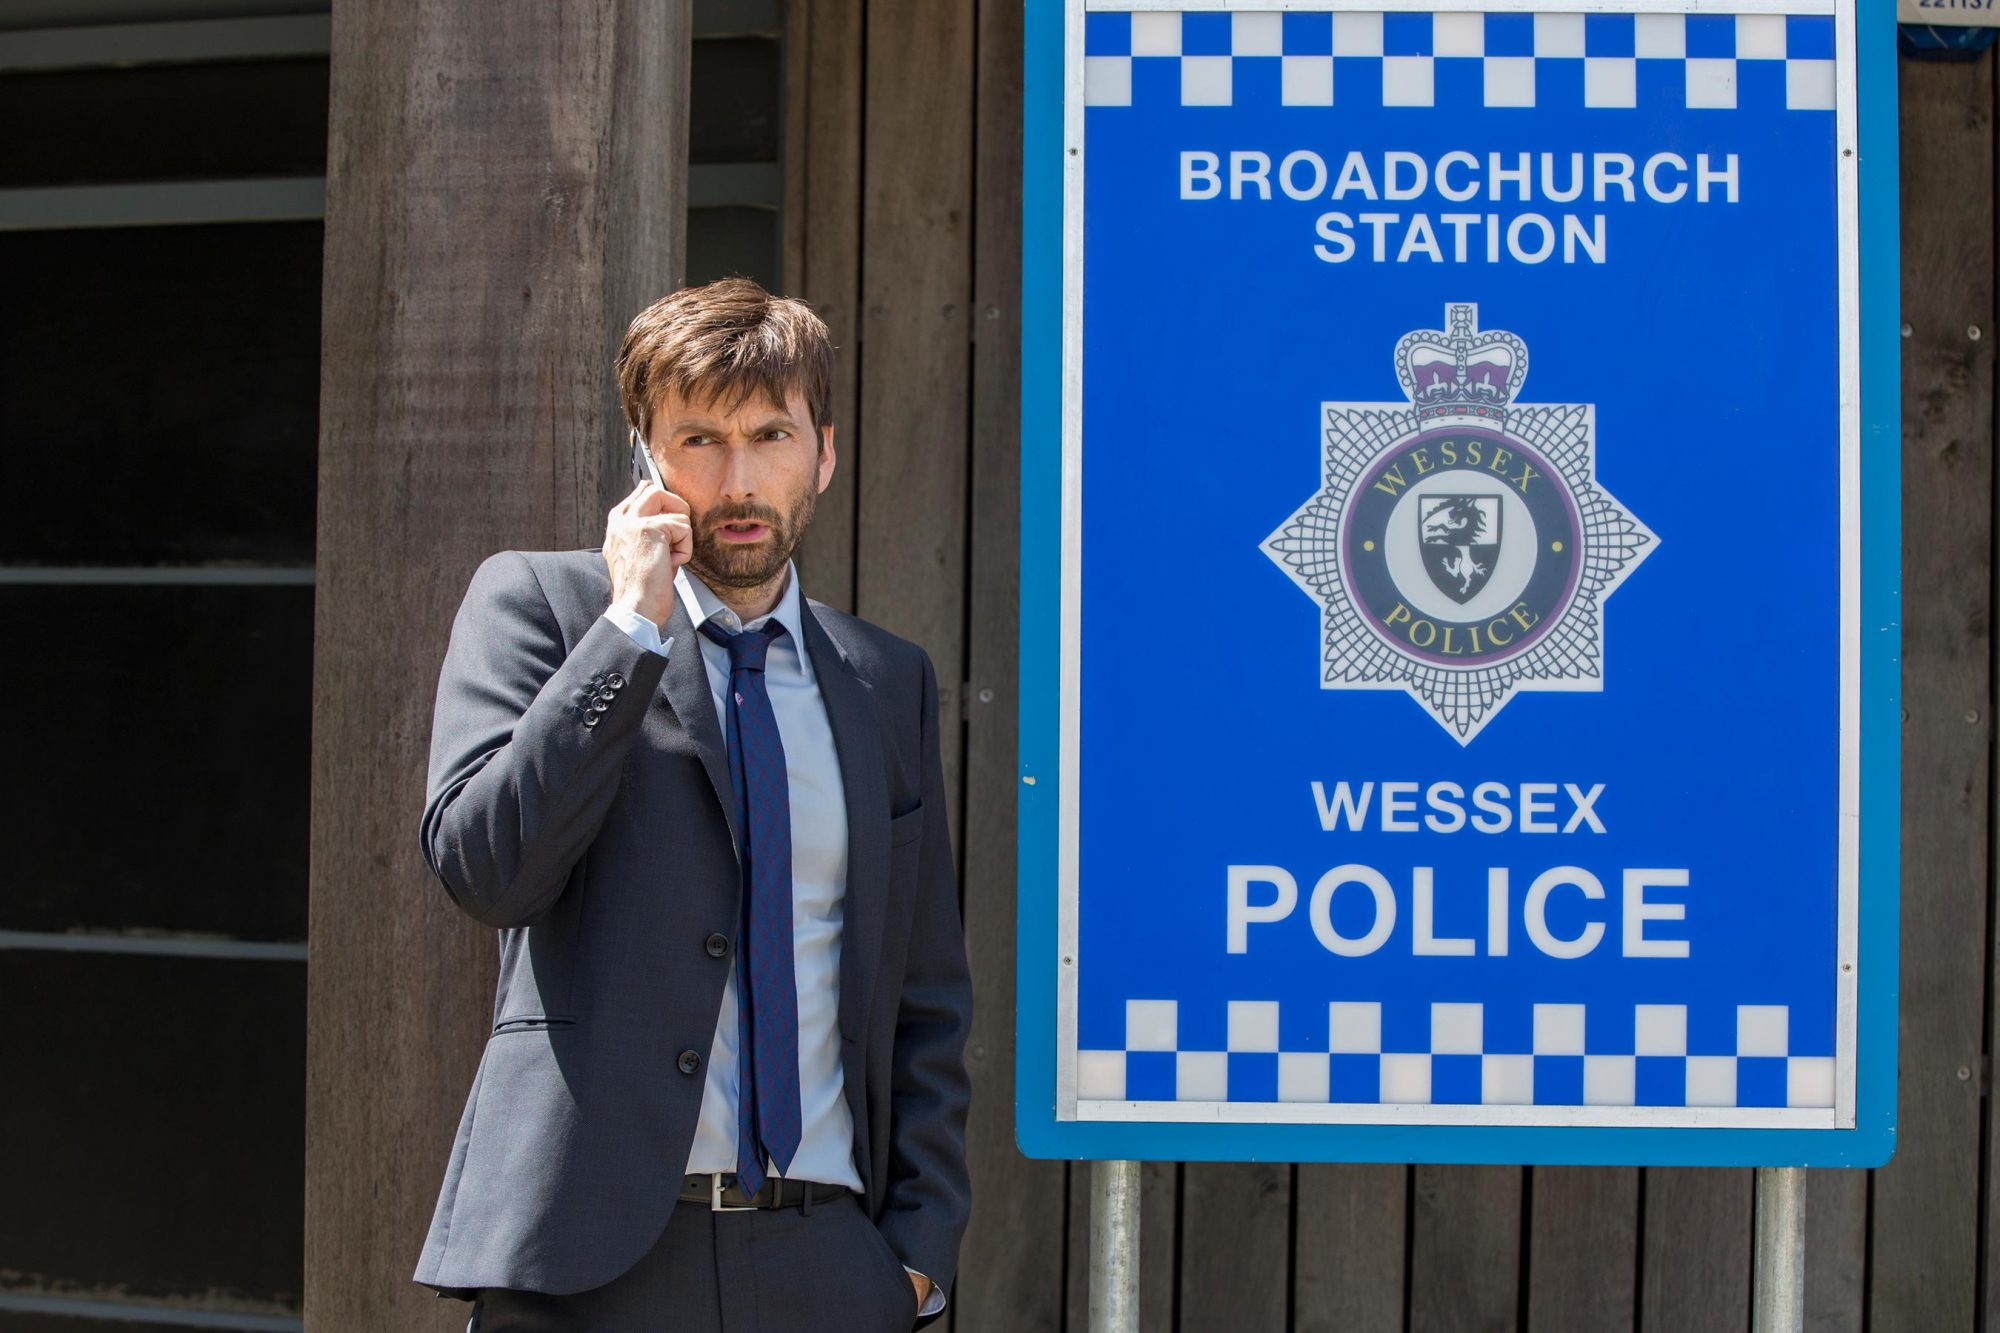 Broadchurch - Series III